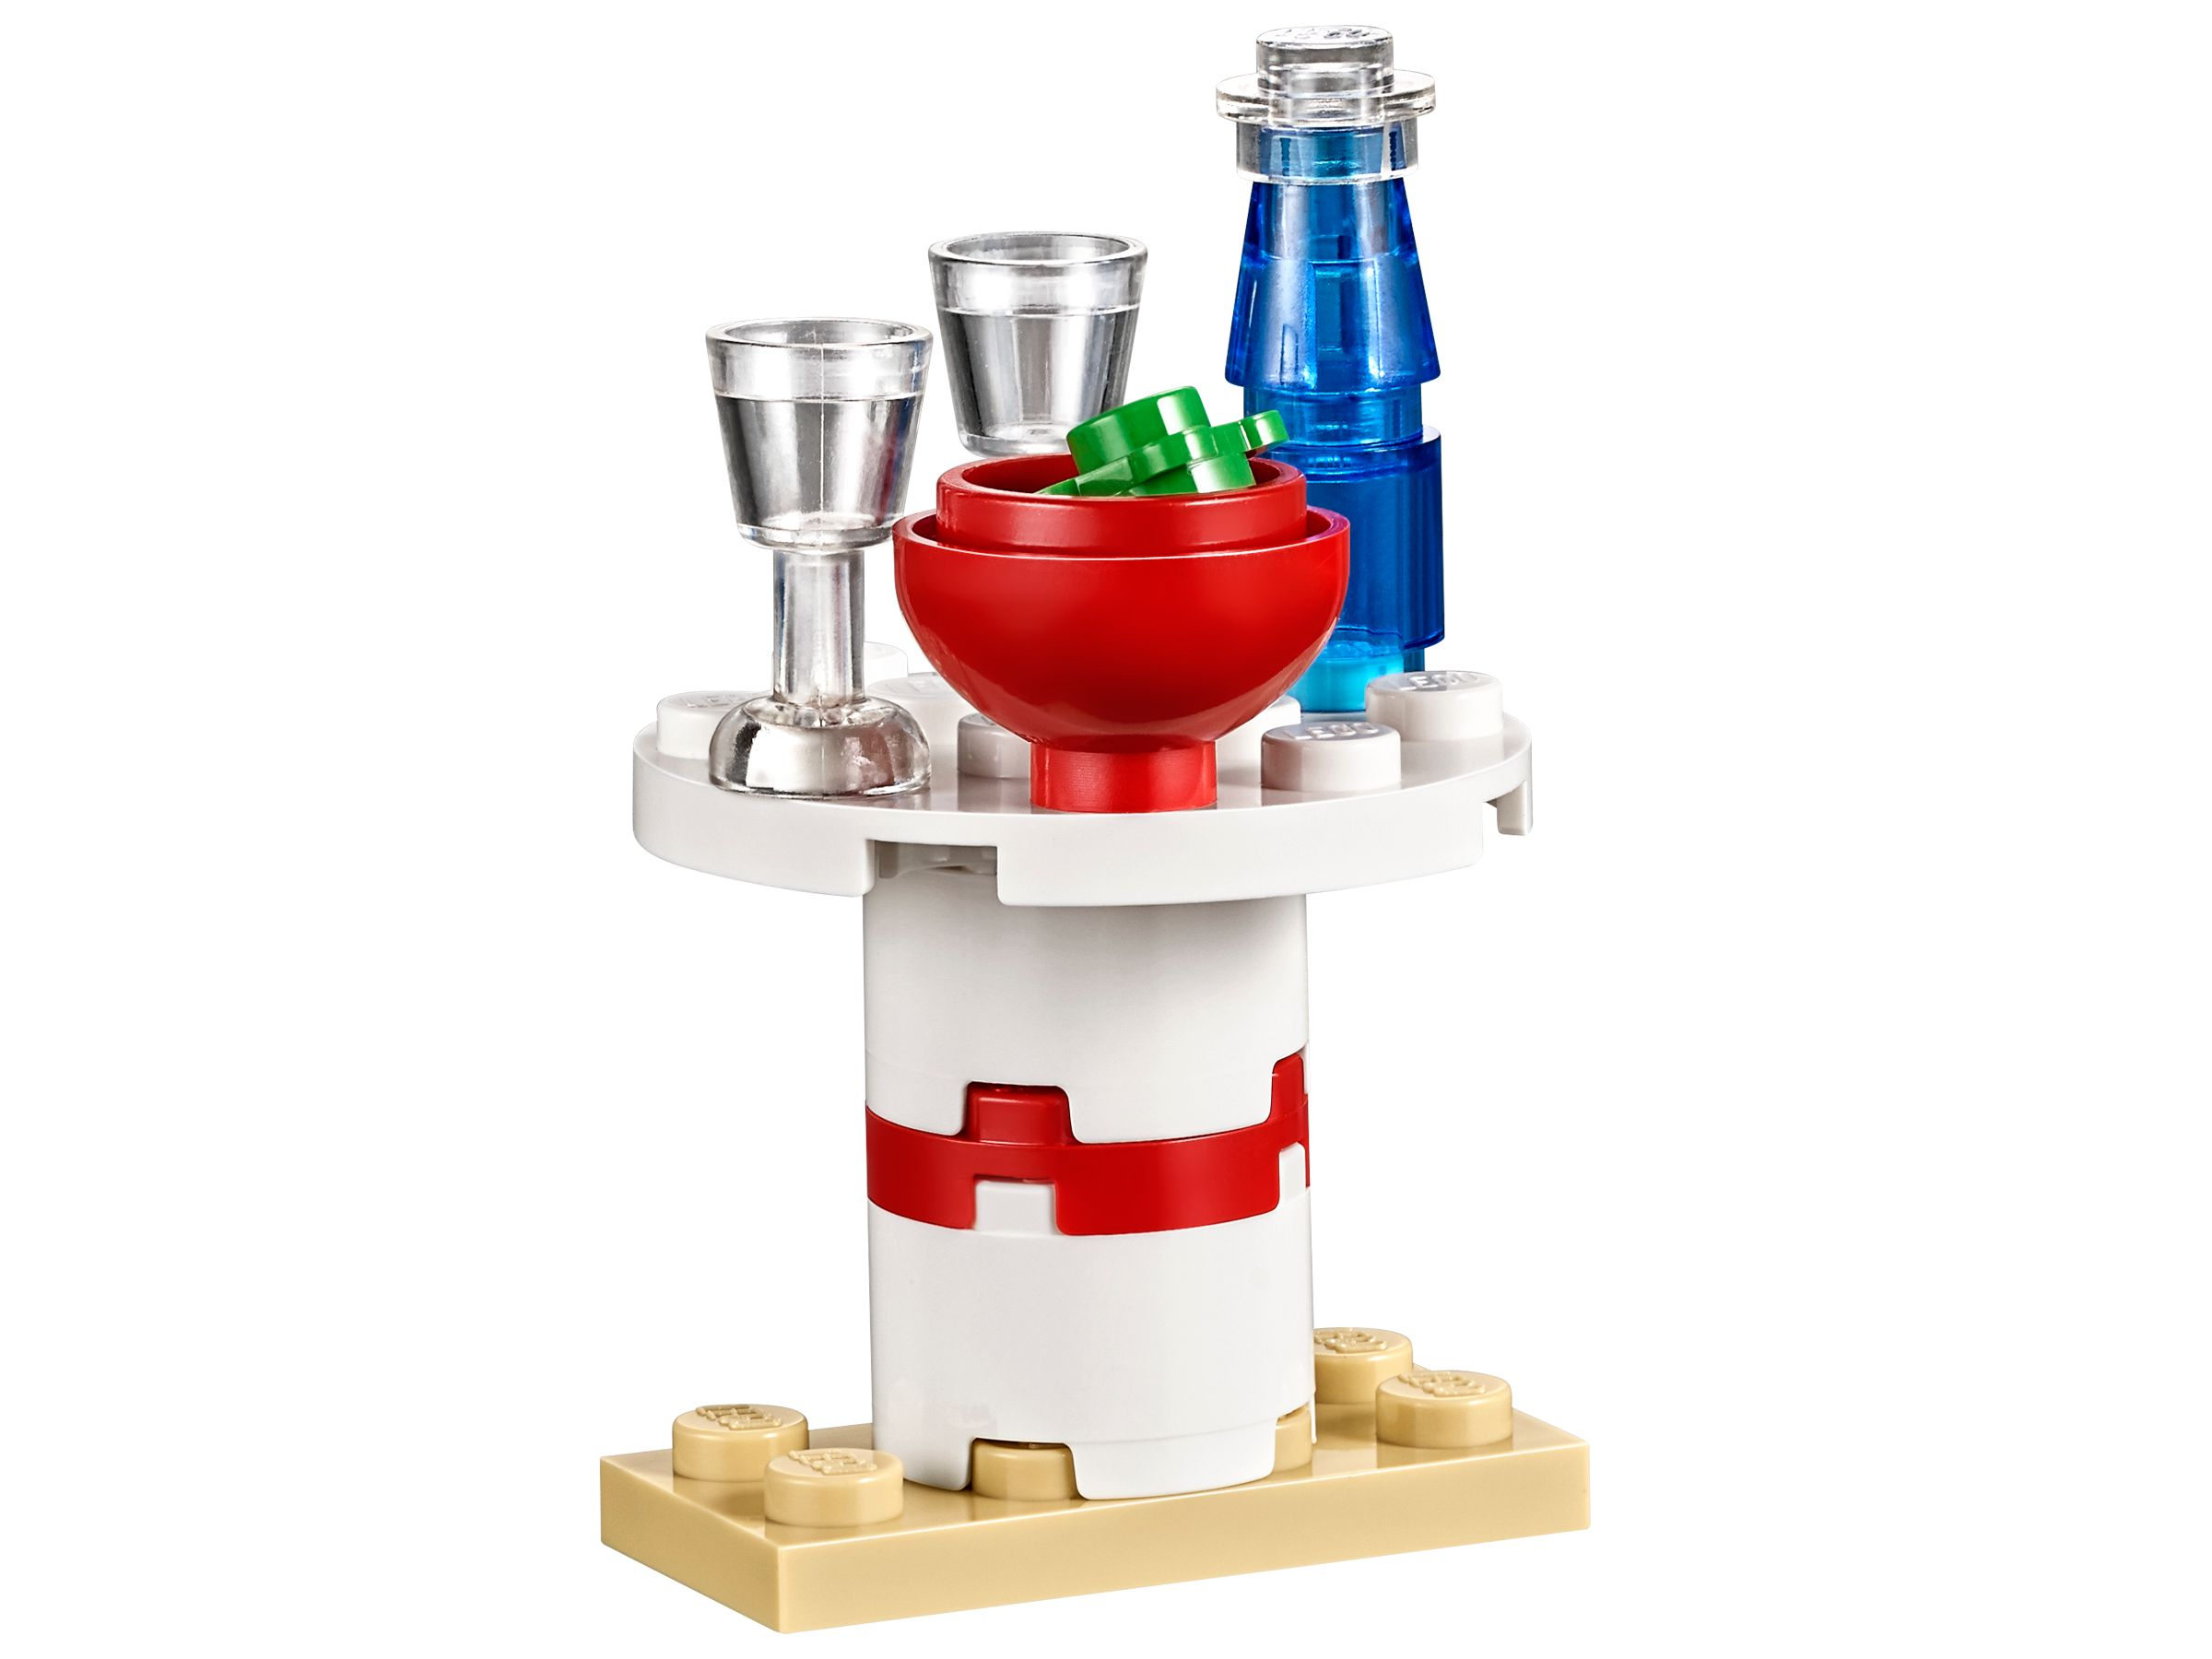 LEGO Friends 41092 Stephanies Pizzeria LEGO_41092_alt4.jpg